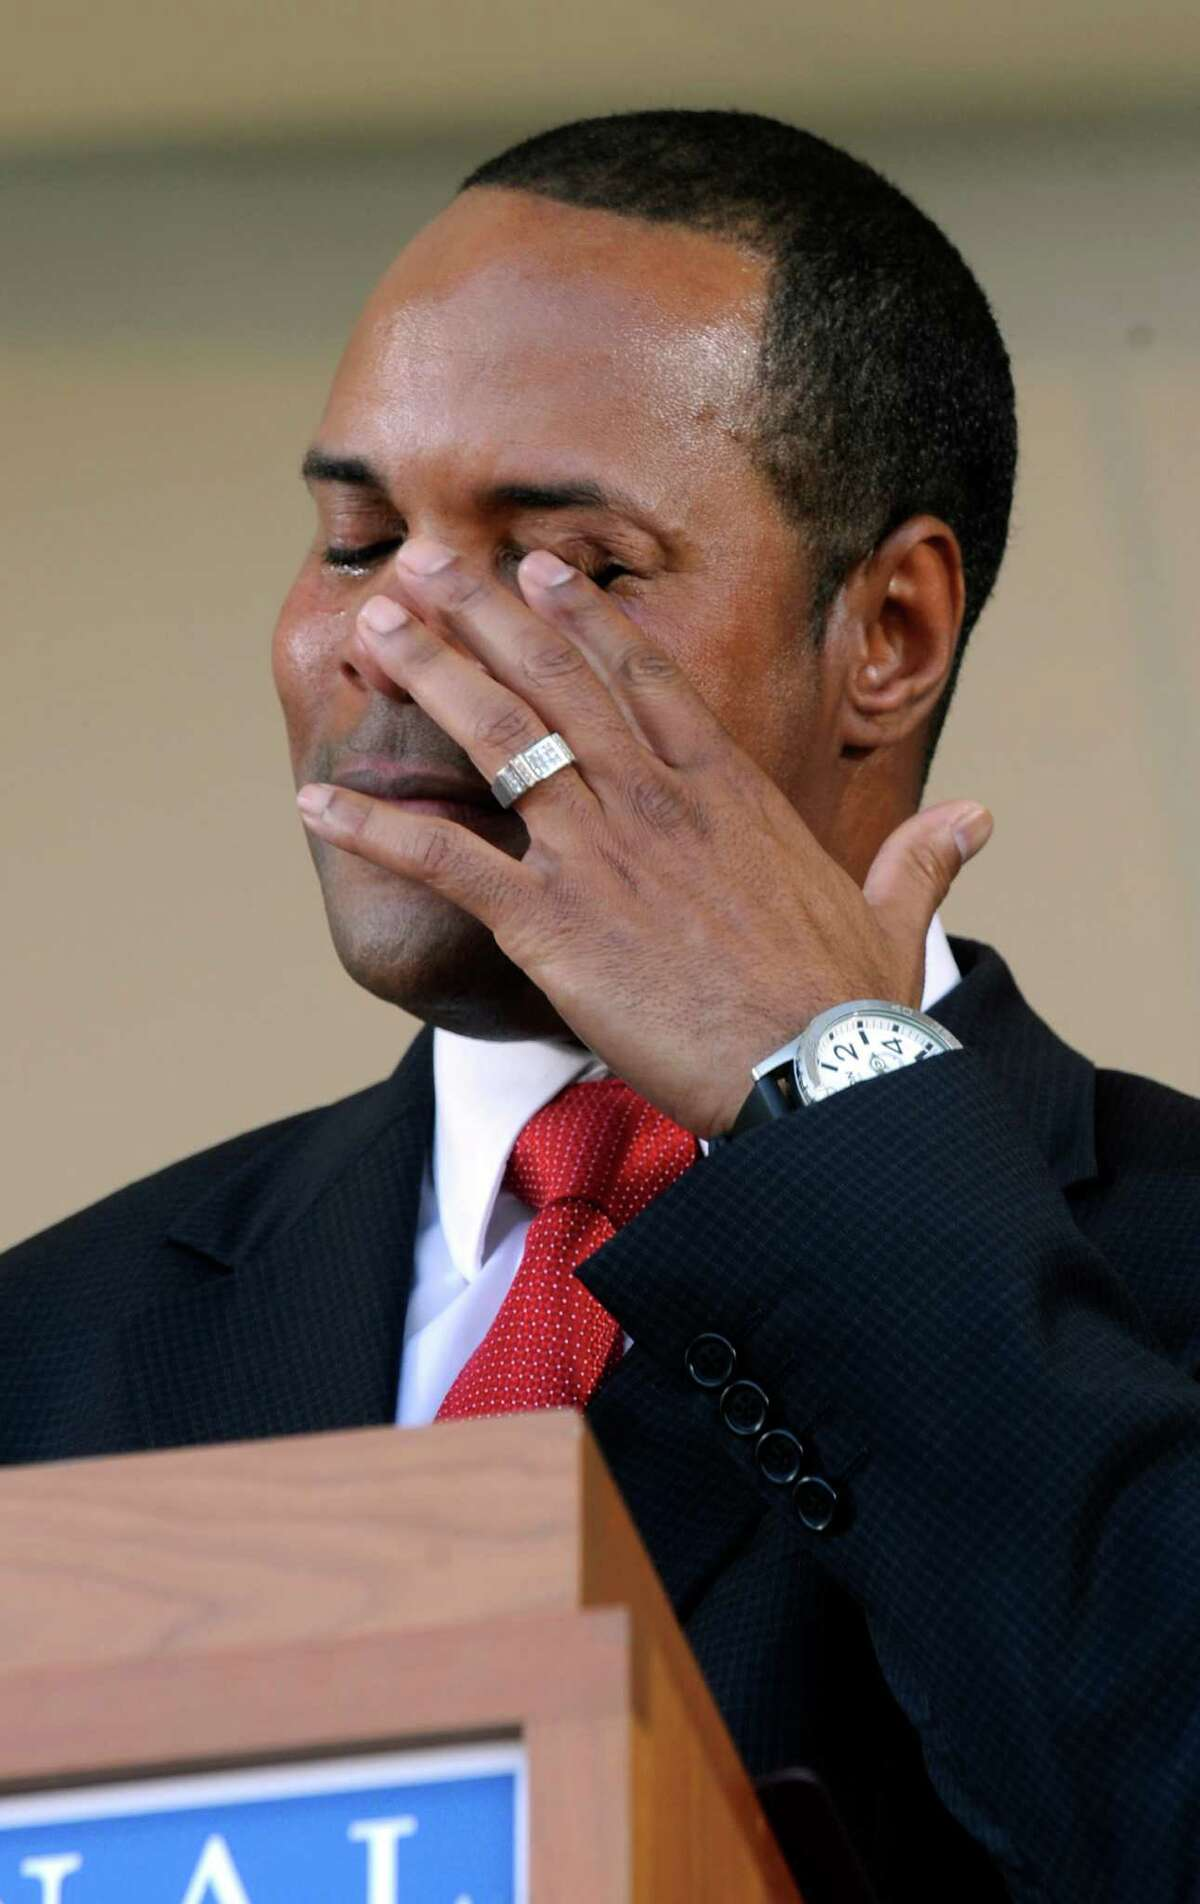 Former Cincinnati Reds star Barry Larkin wipes his eye as he gives his acceptance speech during his induction into the National Baseball Hall of Fame and Museum, Sunday, July 22, 2012, in Cooperstown, N.Y.